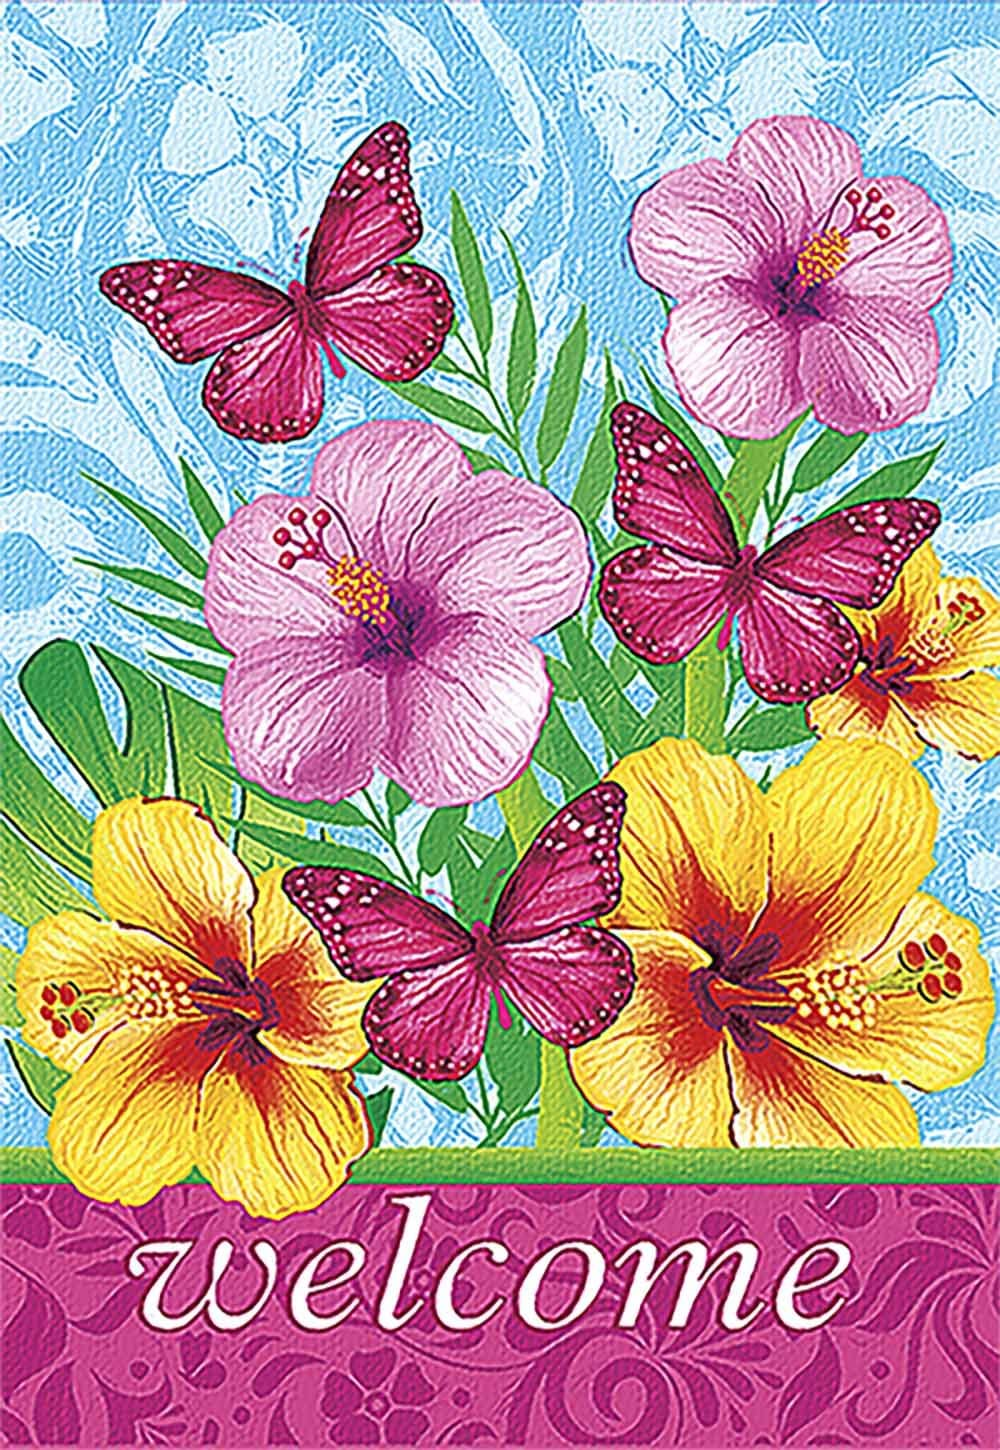 Morigins Welcome Fabulous Flowers Decorative Spring Double Sided Garden Flag 12.5x18 inch